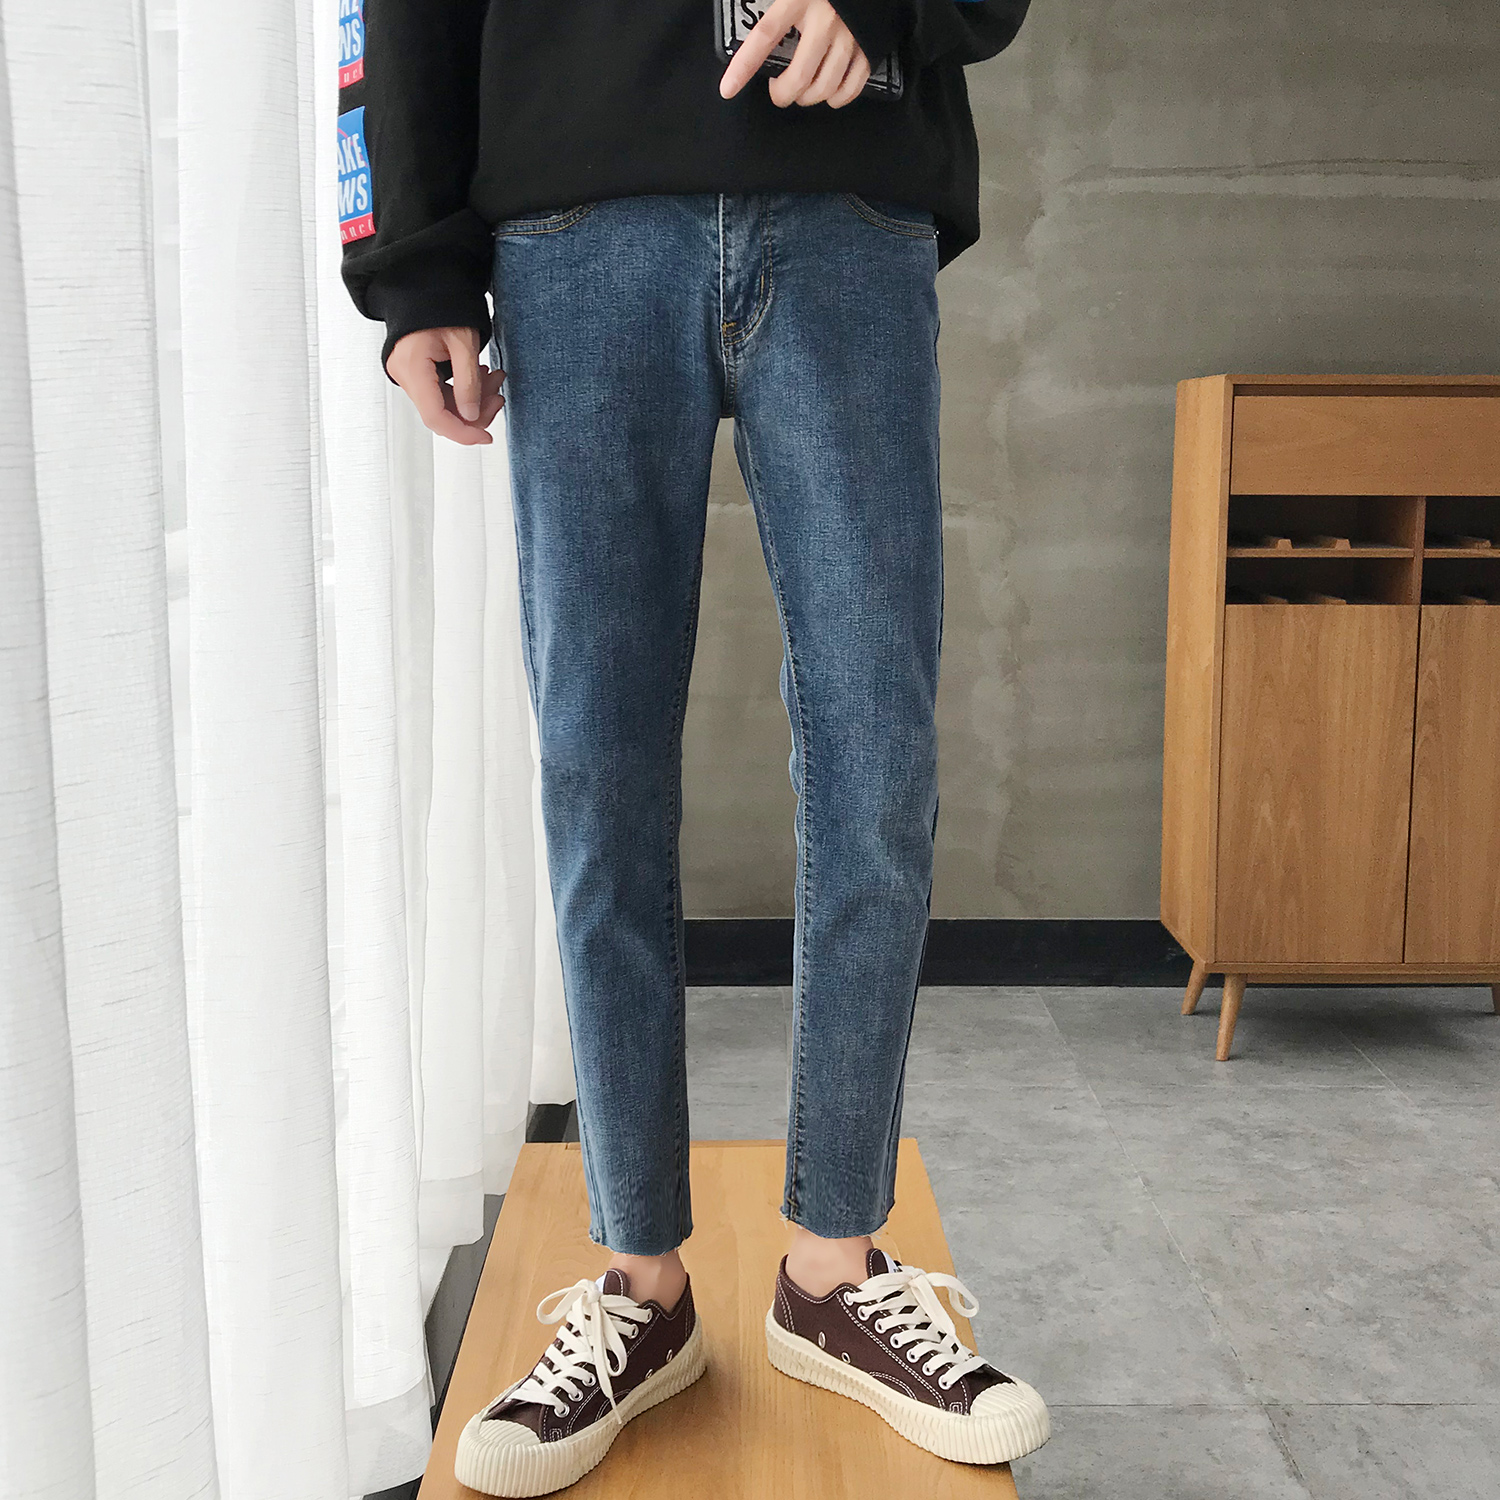 2018 Japanese Style Men's Spring Solid Color Stretch Slim Fit Classic Skinny Jeans Blue Casual Pants Biker Denim Trousers